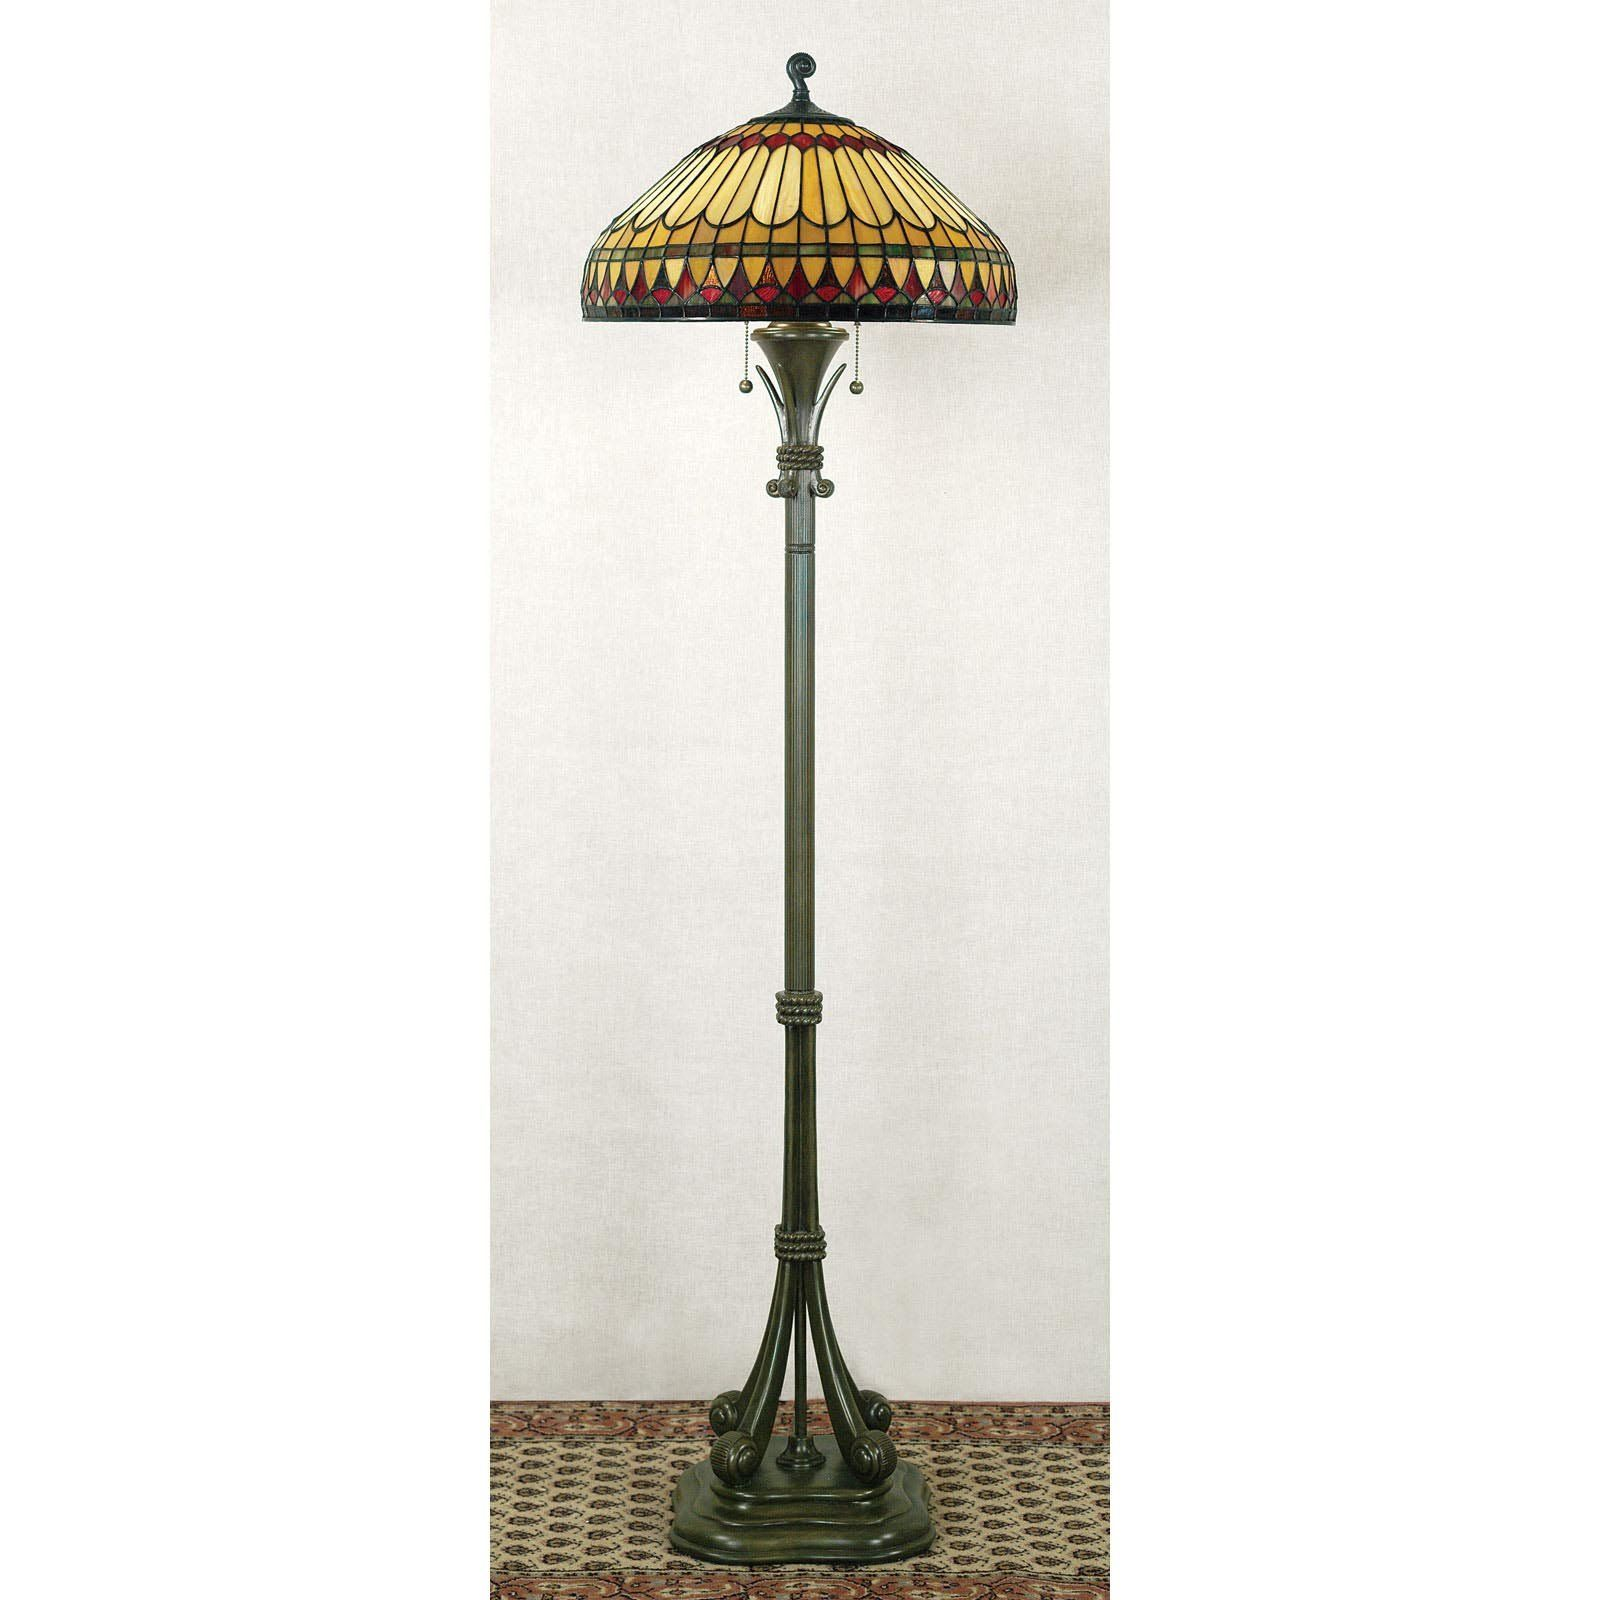 Tiffany Floor Lamp Inspiration Tiffany Lamps For Sale  Tiffany Floor Lamps Clearance Sale Design Decoration